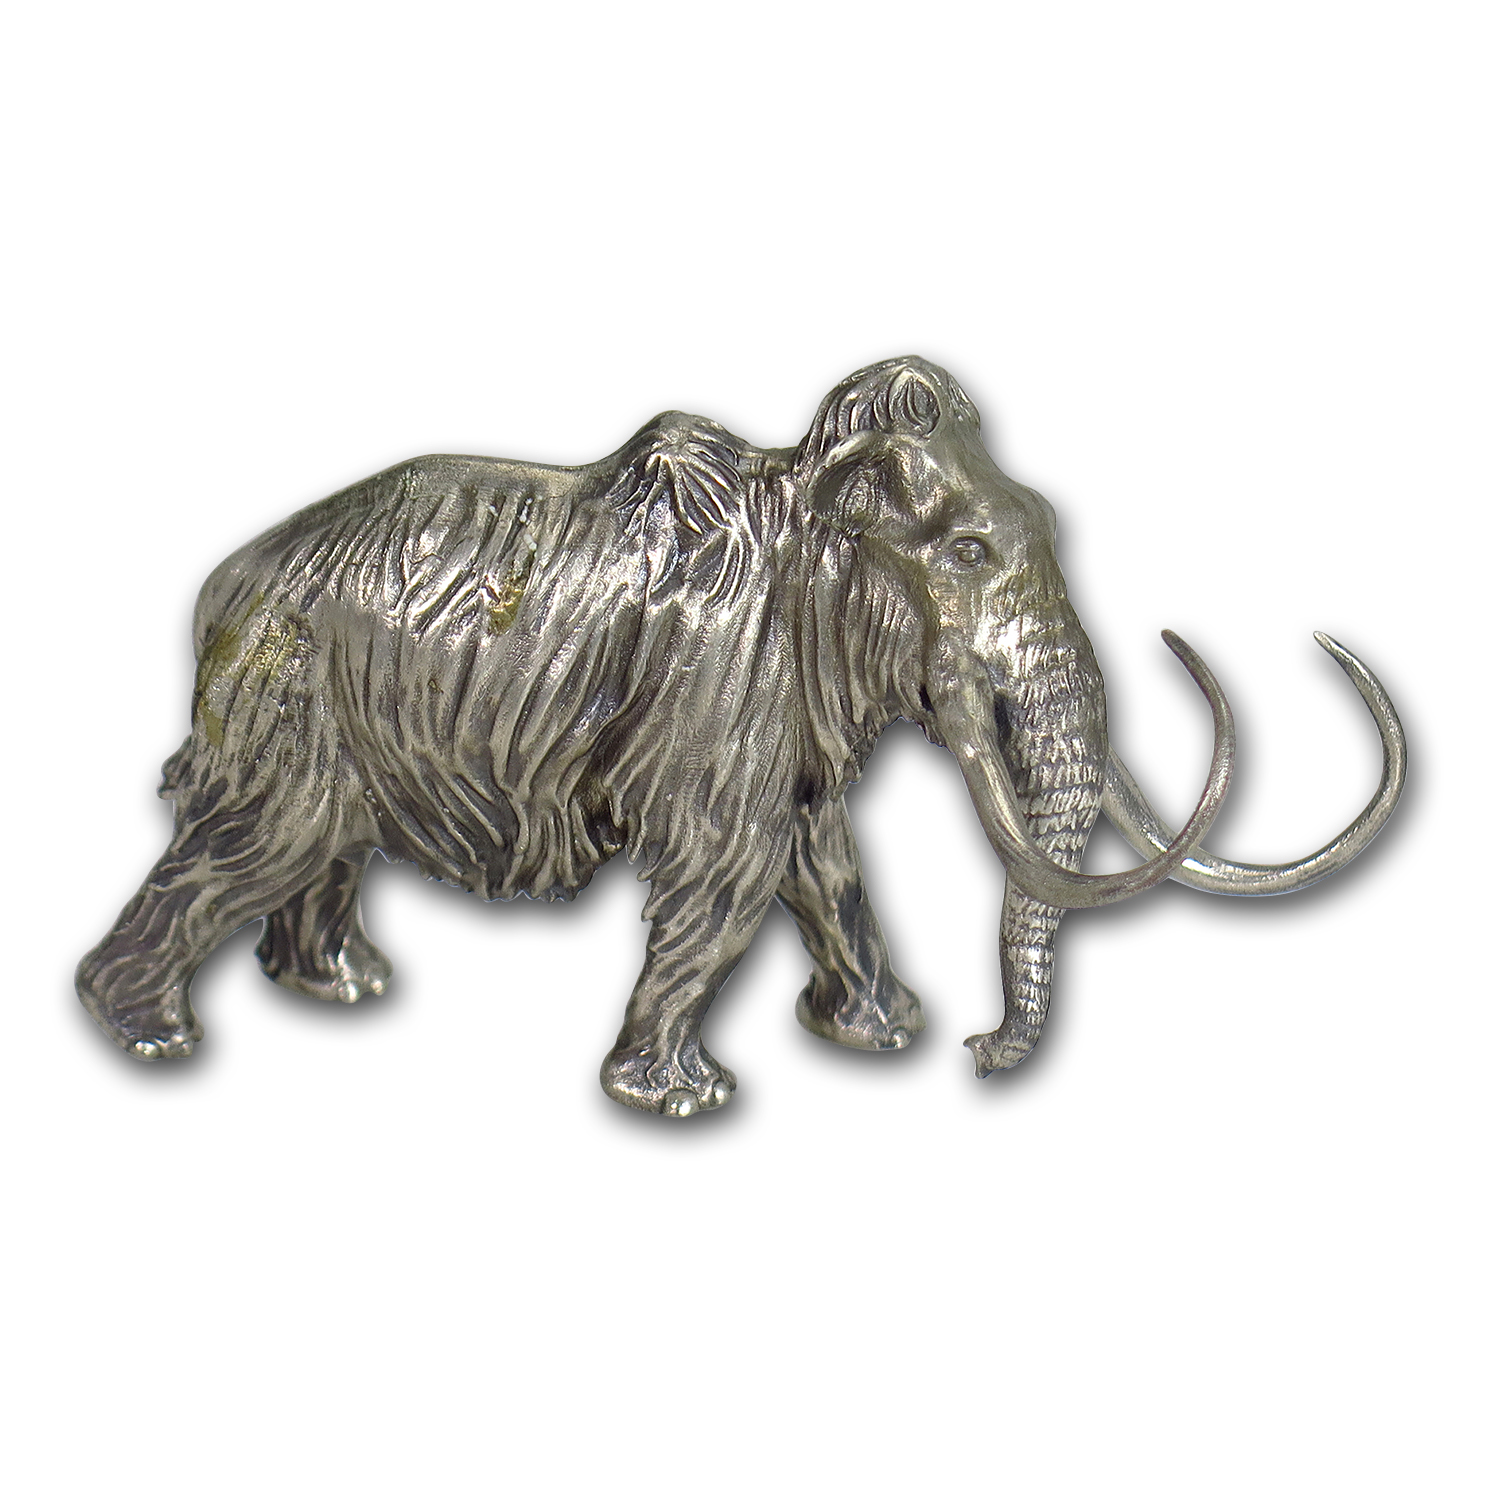 8 oz Silver Antique Statue - Woolly Mammoth